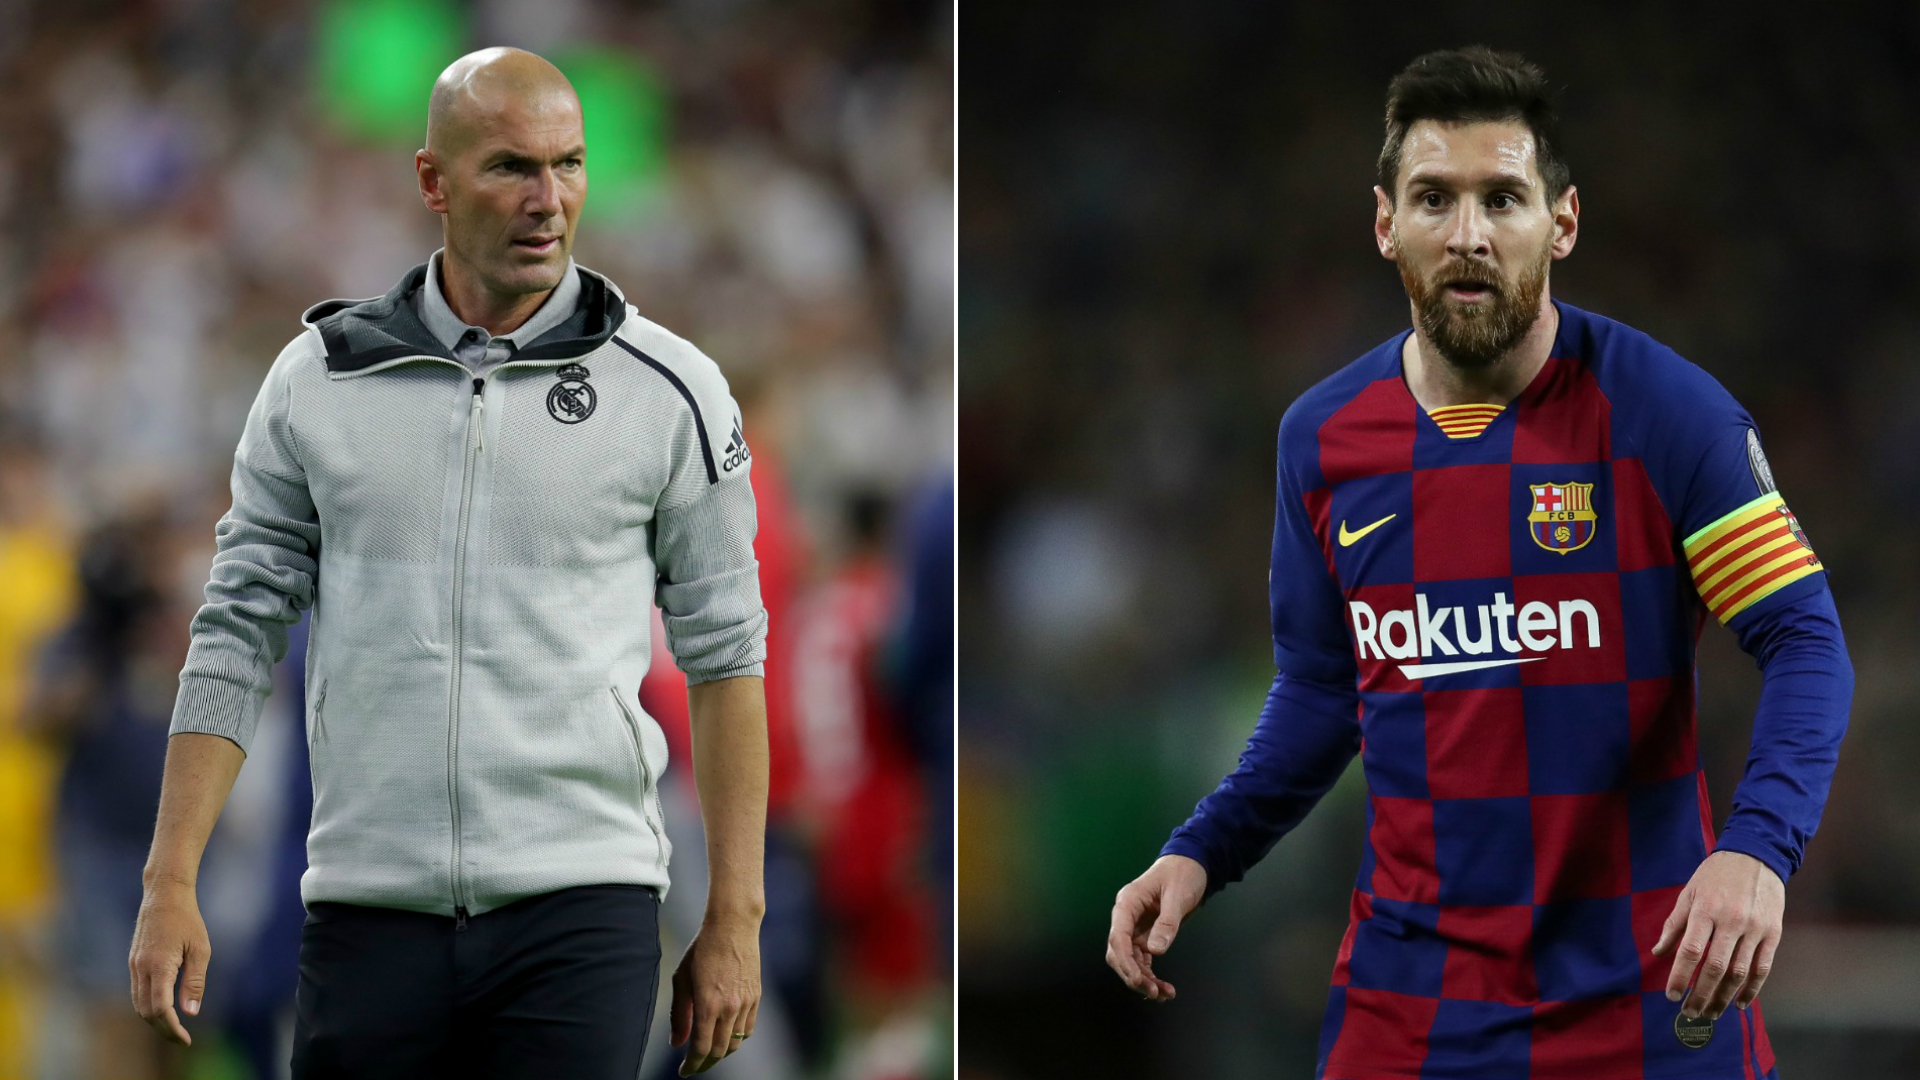 Messi surprised Real Madrid boss Zidane has critics